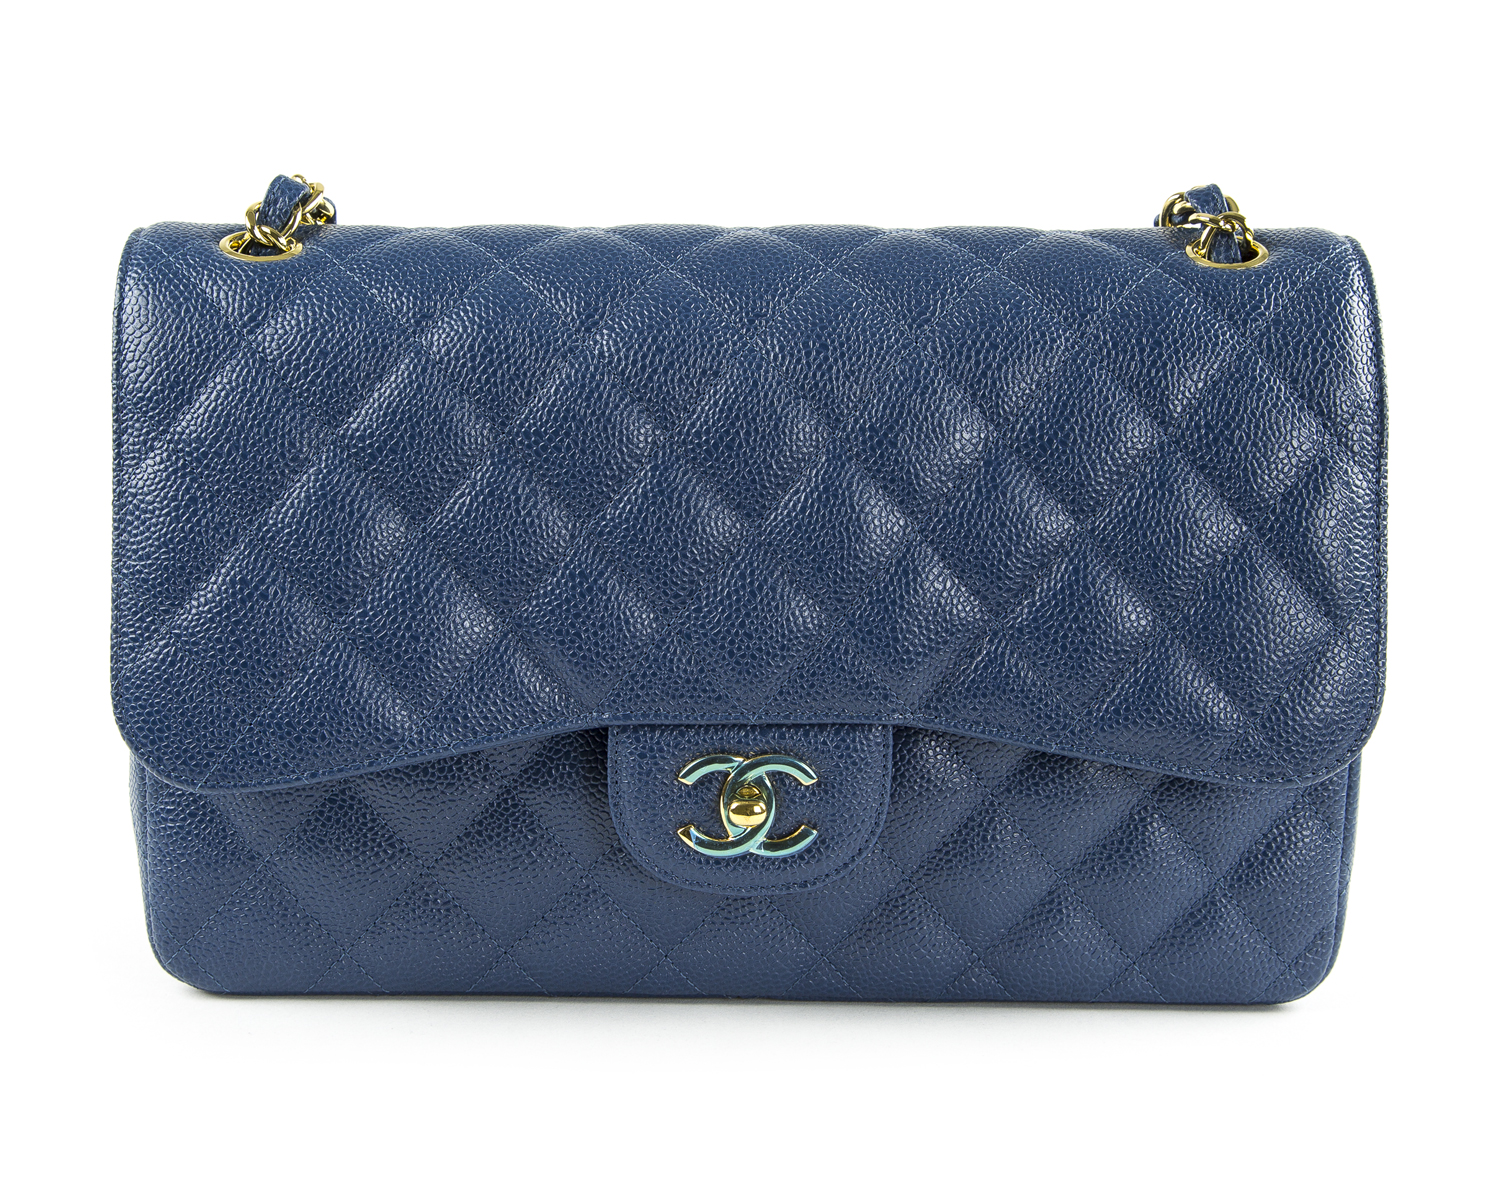 84dd25647a45e6 CHANEL Dark Blue Caviar Leather Jumbo Classic Flap Bag Gold Hardware $6,200  NEW